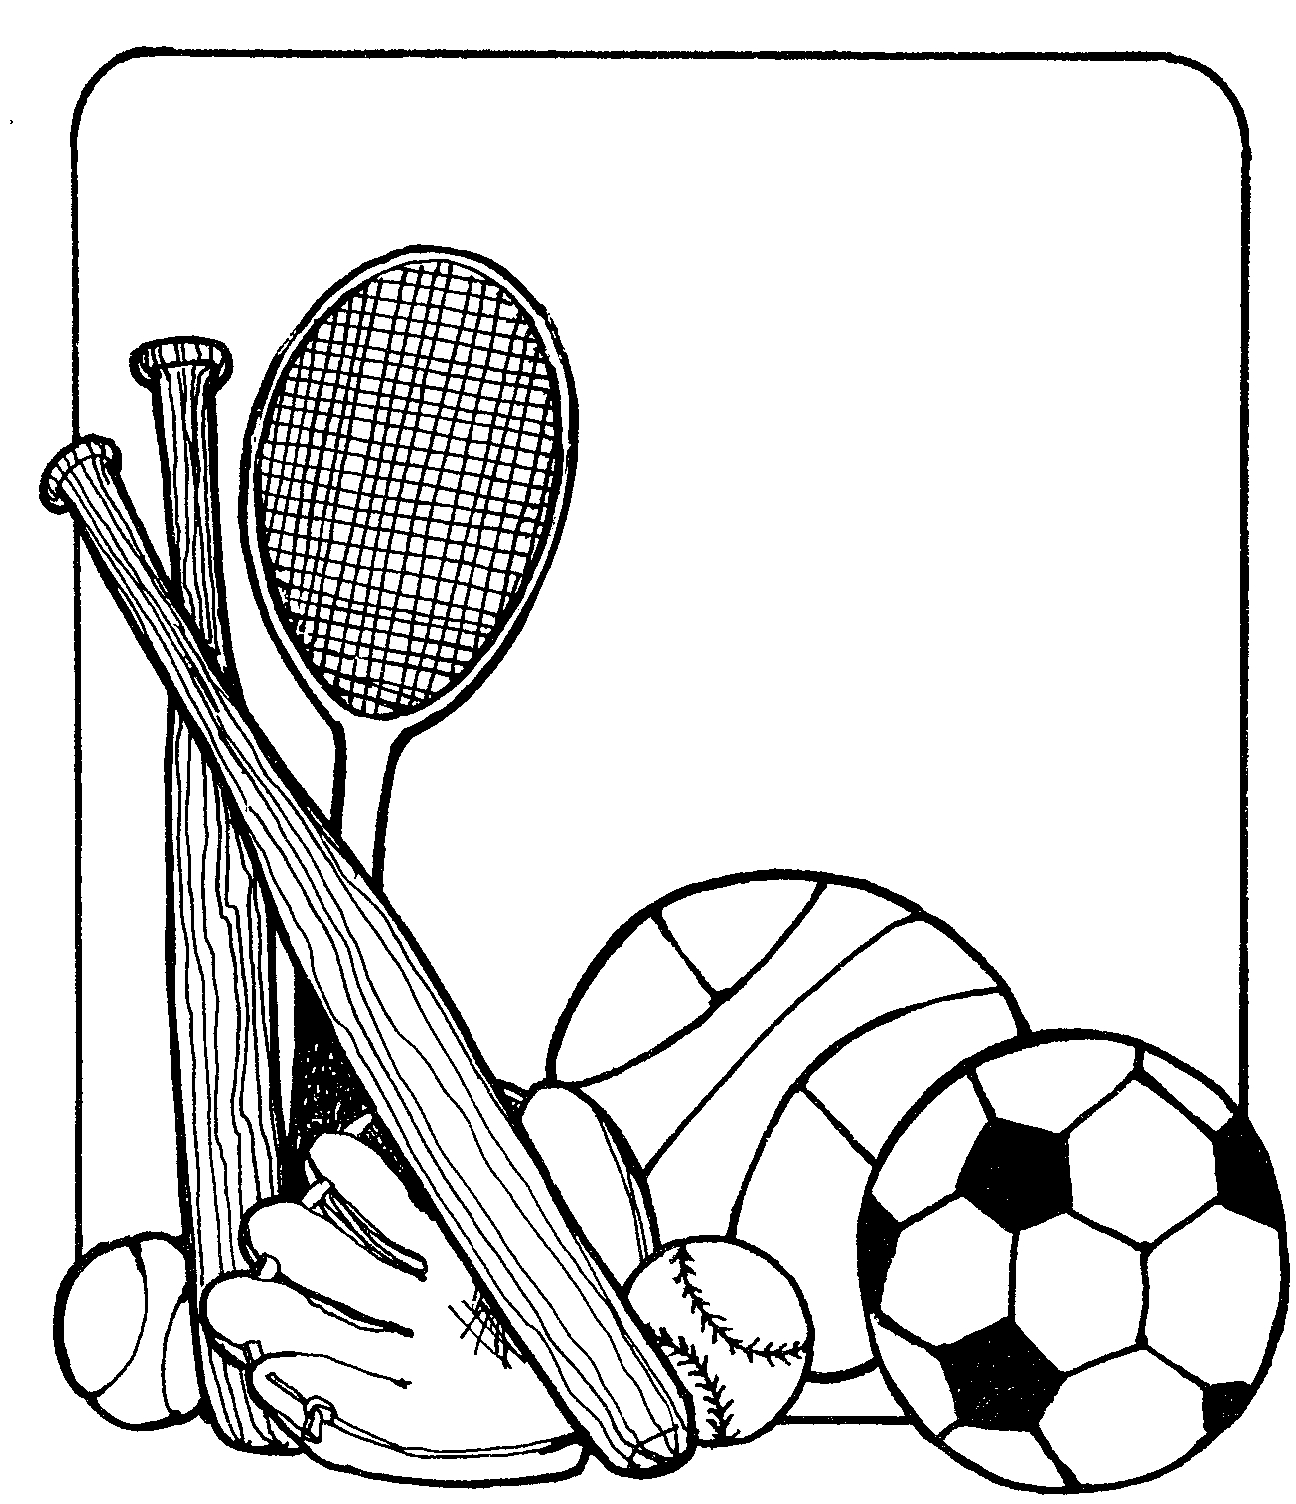 Sports illustrated black and white clipart hd clip black and white download Free Black Sports Cliparts, Download Free Clip Art, Free ... clip black and white download